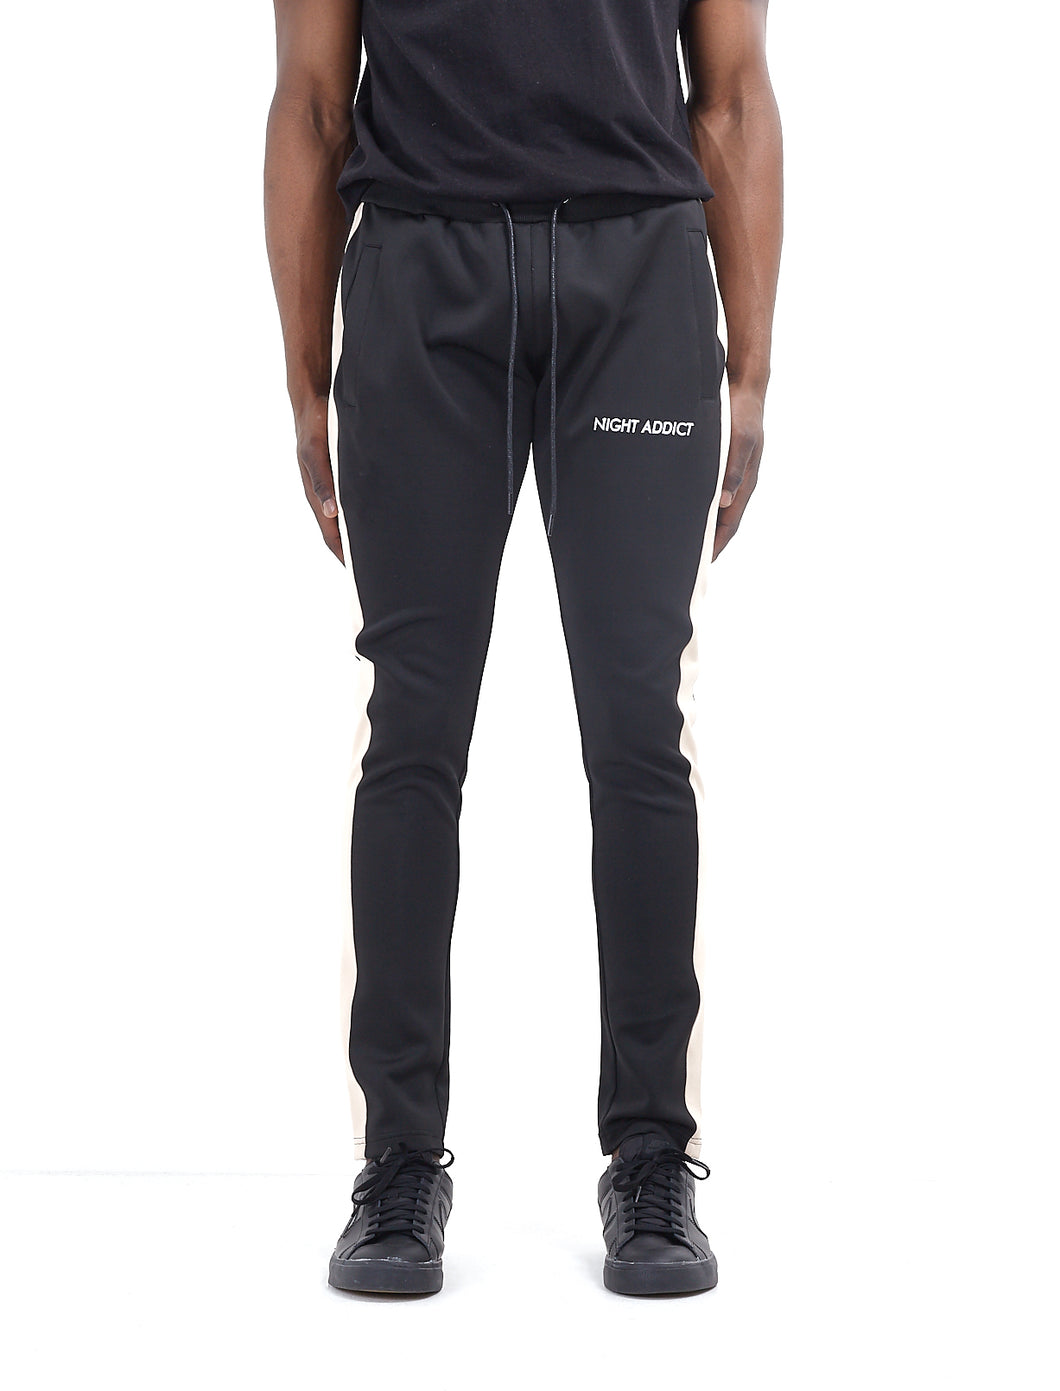 TECHNICAL TRACK PANTS - BLACK